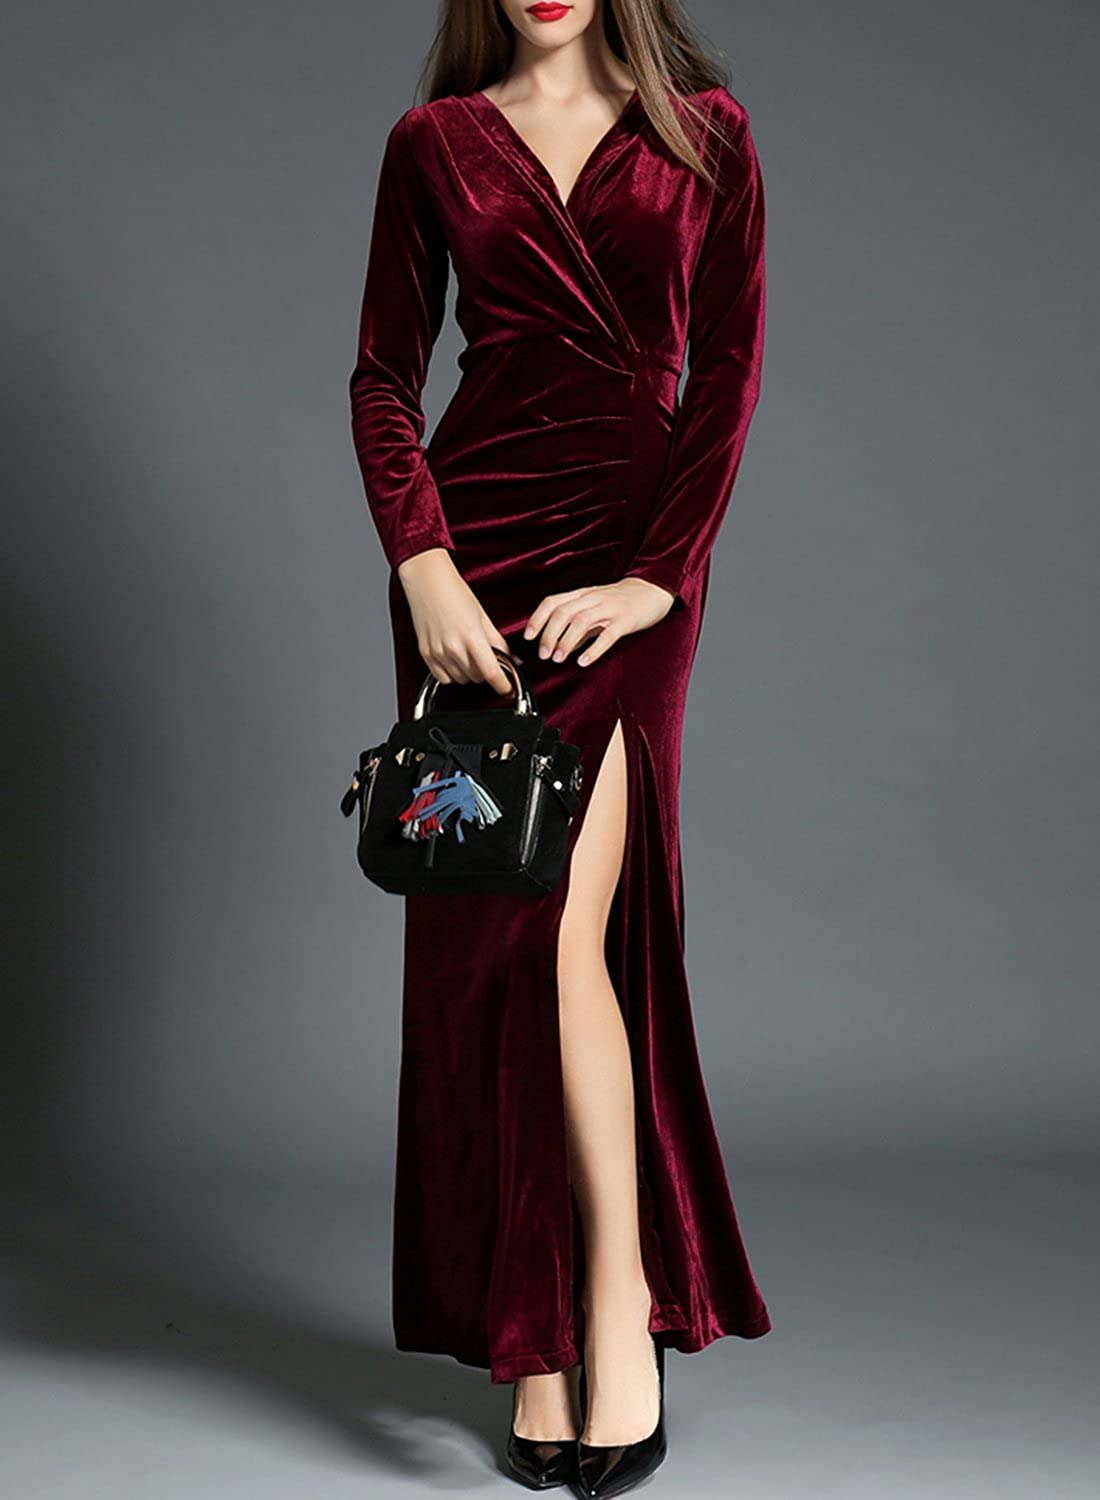 ASVOGUE Womens Elegant High Slit Velvet Prom Dress, Burgundy S: Amazon.co.uk: Clothing